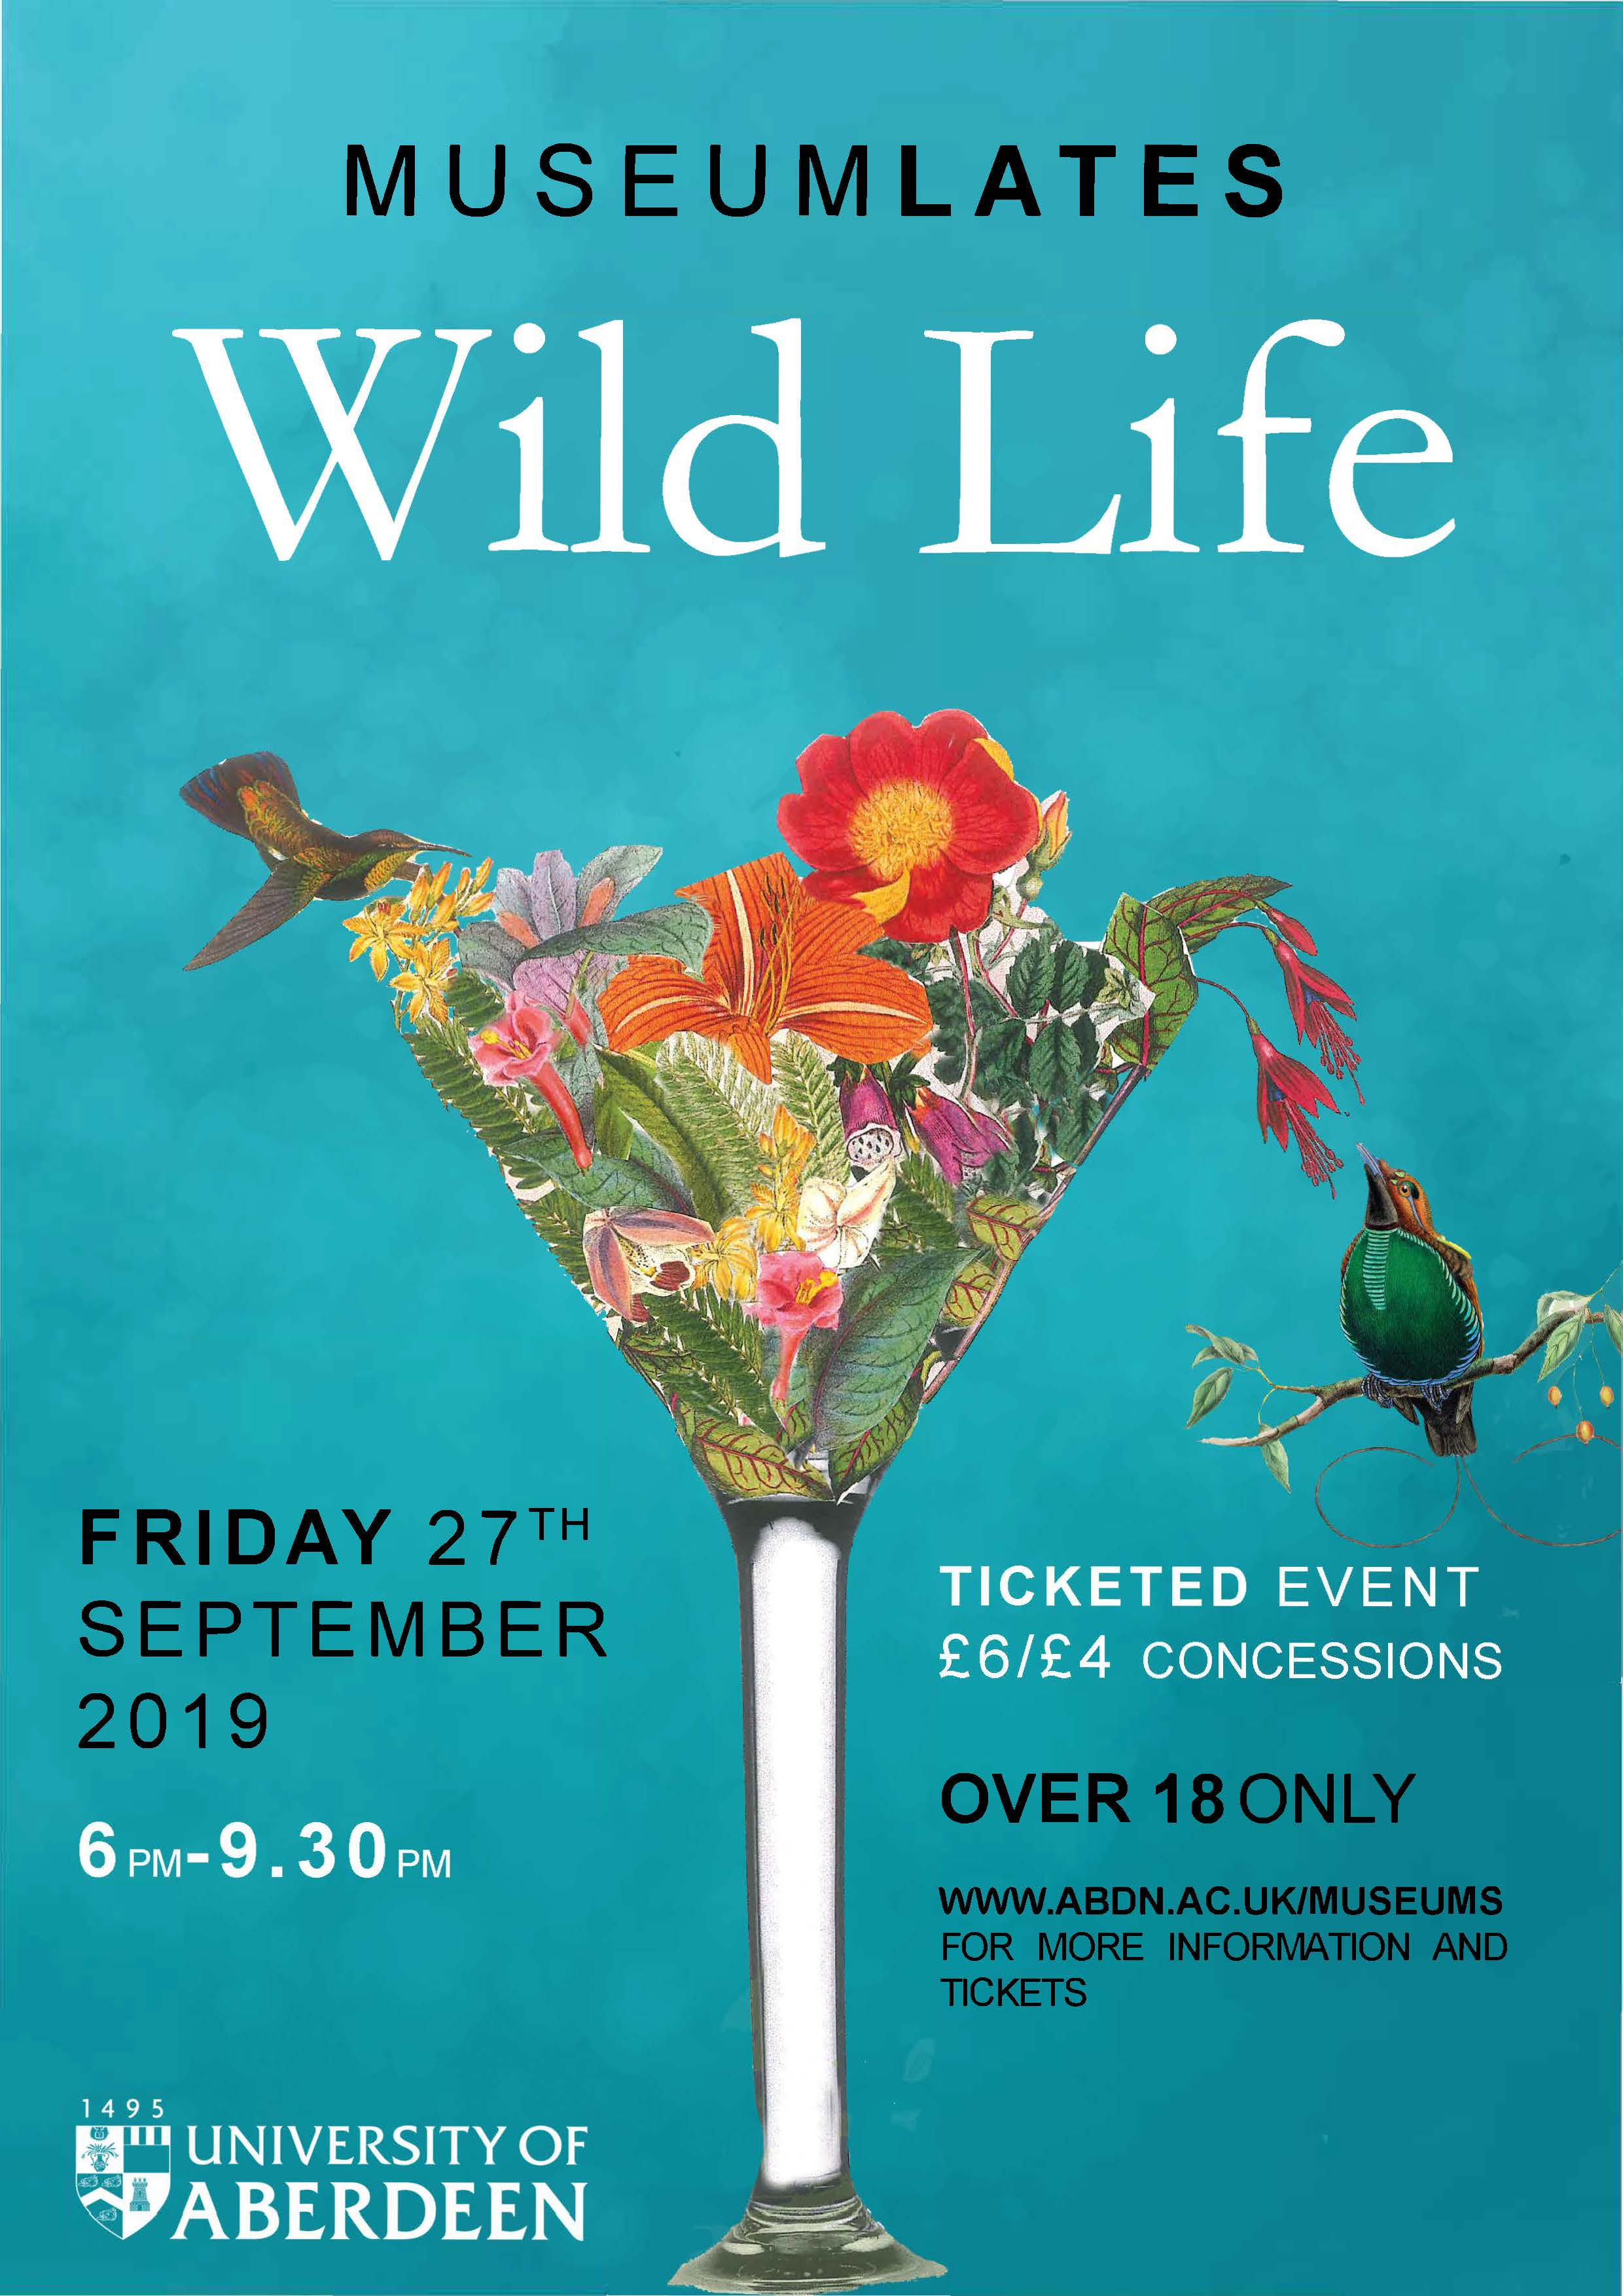 Late Night at the Museum – Wild Life! Museum Late